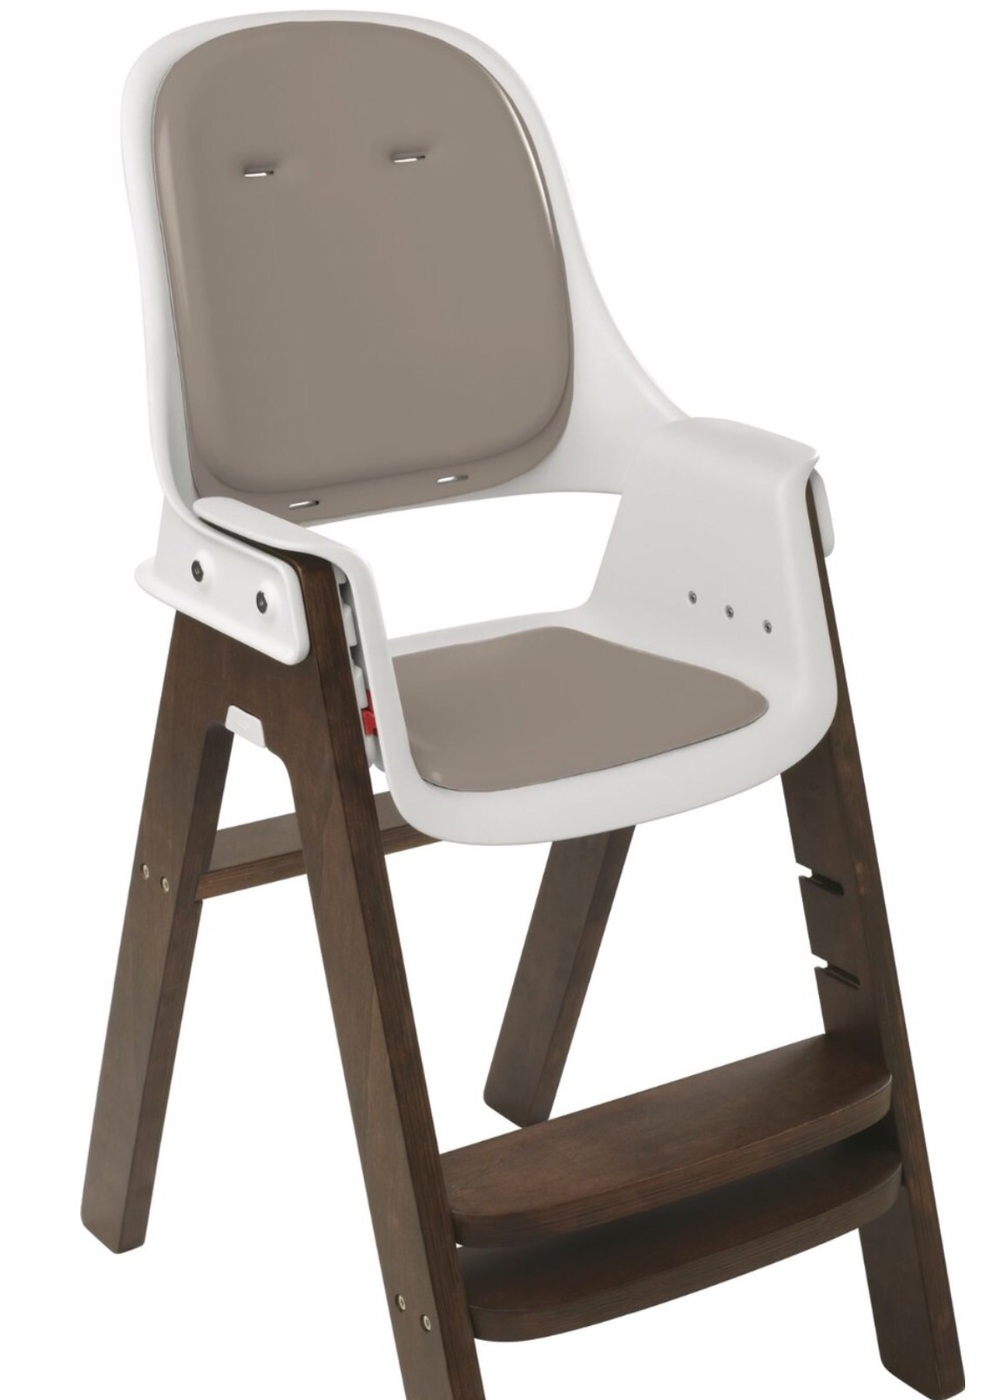 Modern High Chair - Baby Essentials - OXO Tot Sprout Taupe Wallnut - The Winemakers Wife